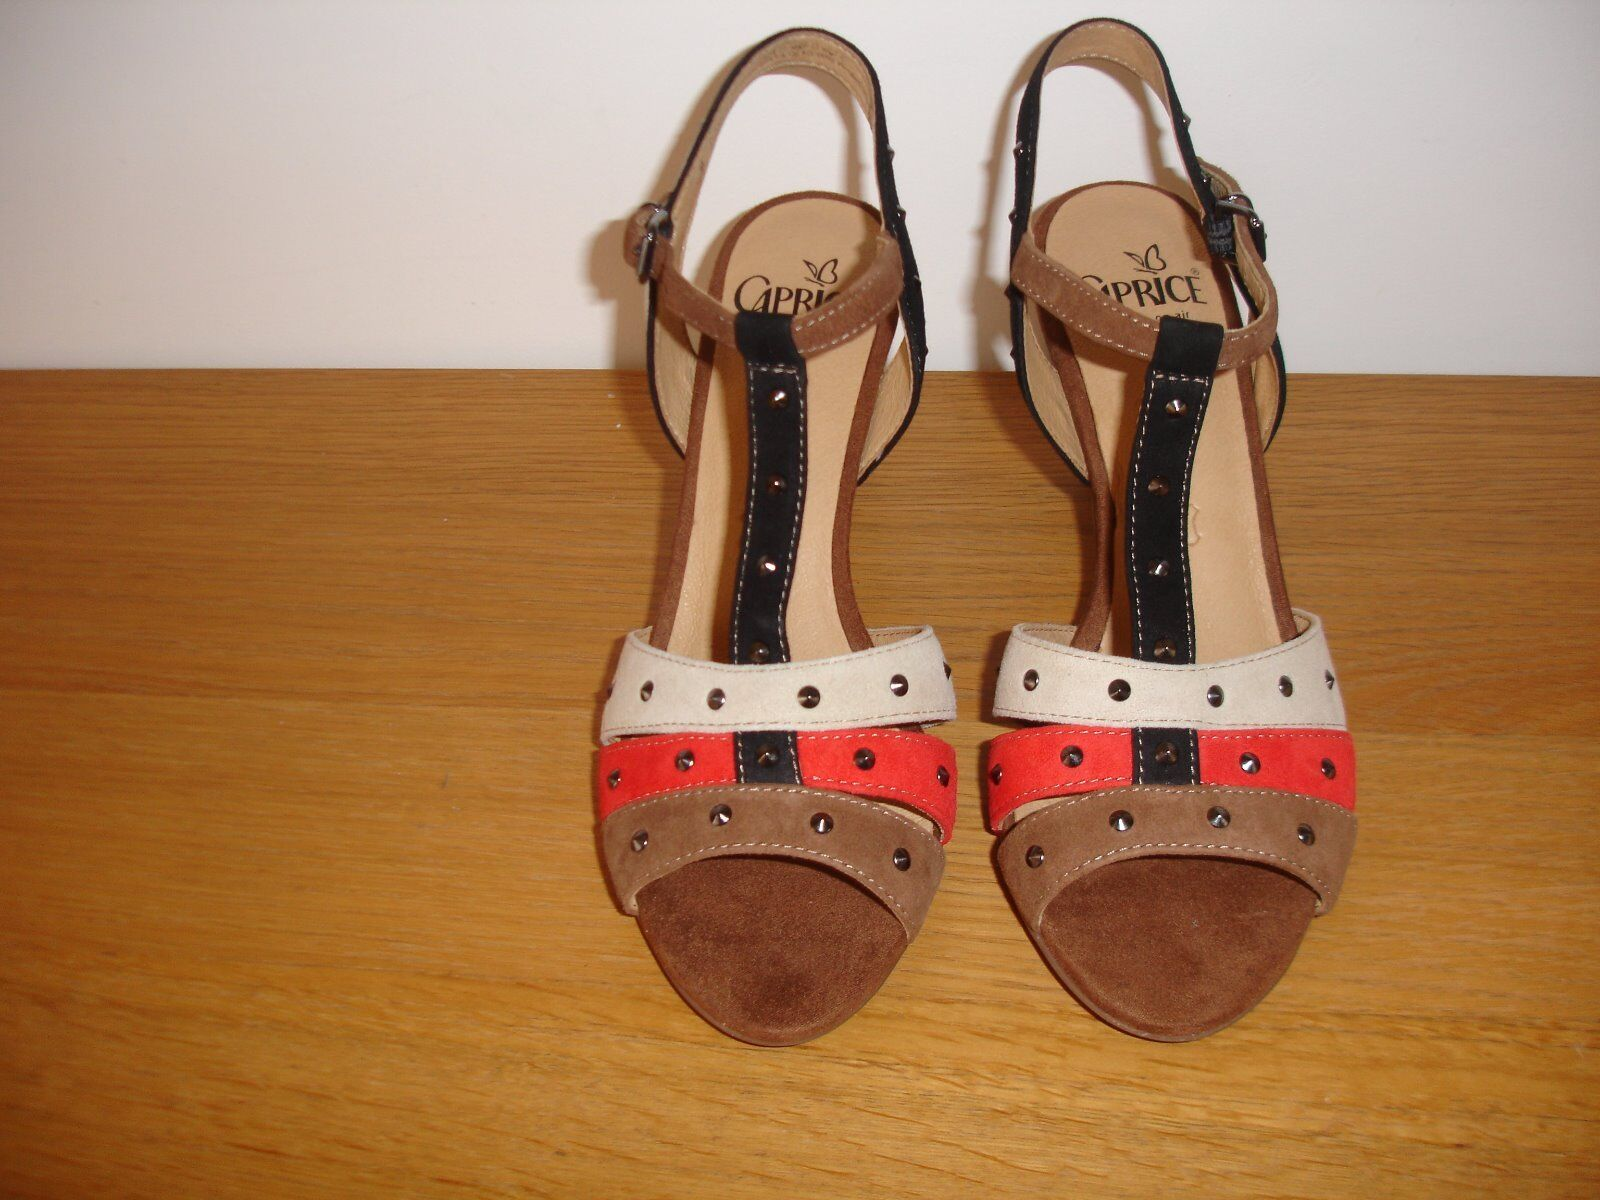 CAPRICE Sandal 9-28303-22 suede  size 7   40.5 New Box